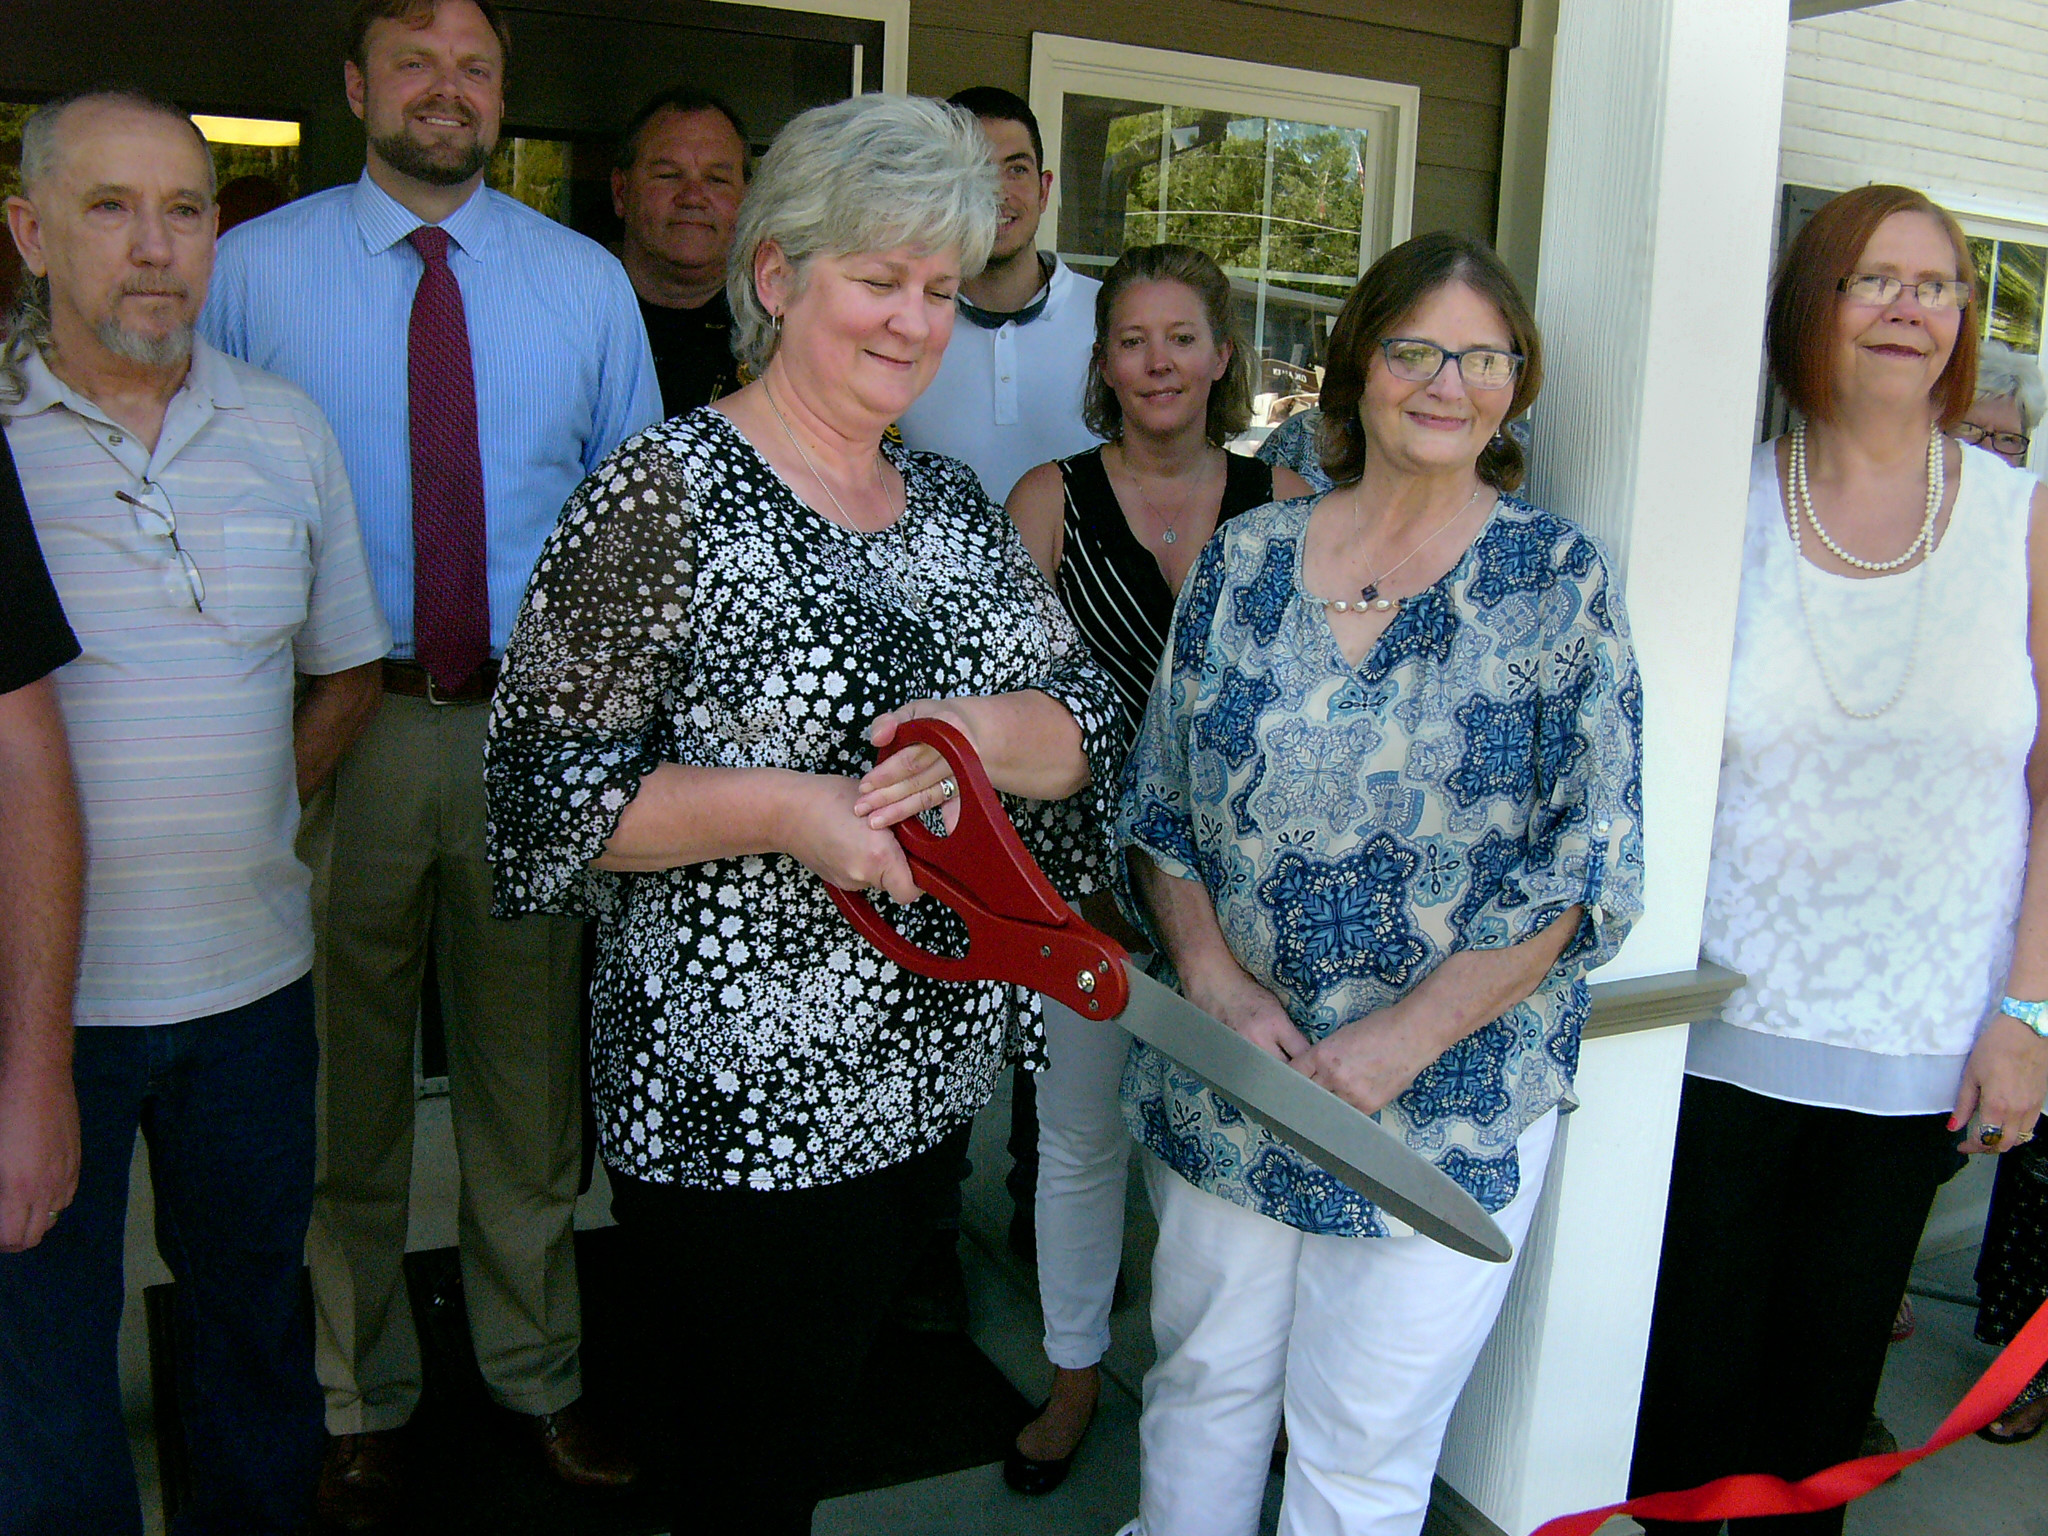 Mayor Kim Billue, surrounded by staff and elected officials, cuts the red ribbon signifying the reopening of White City Hall following repairs to the building.